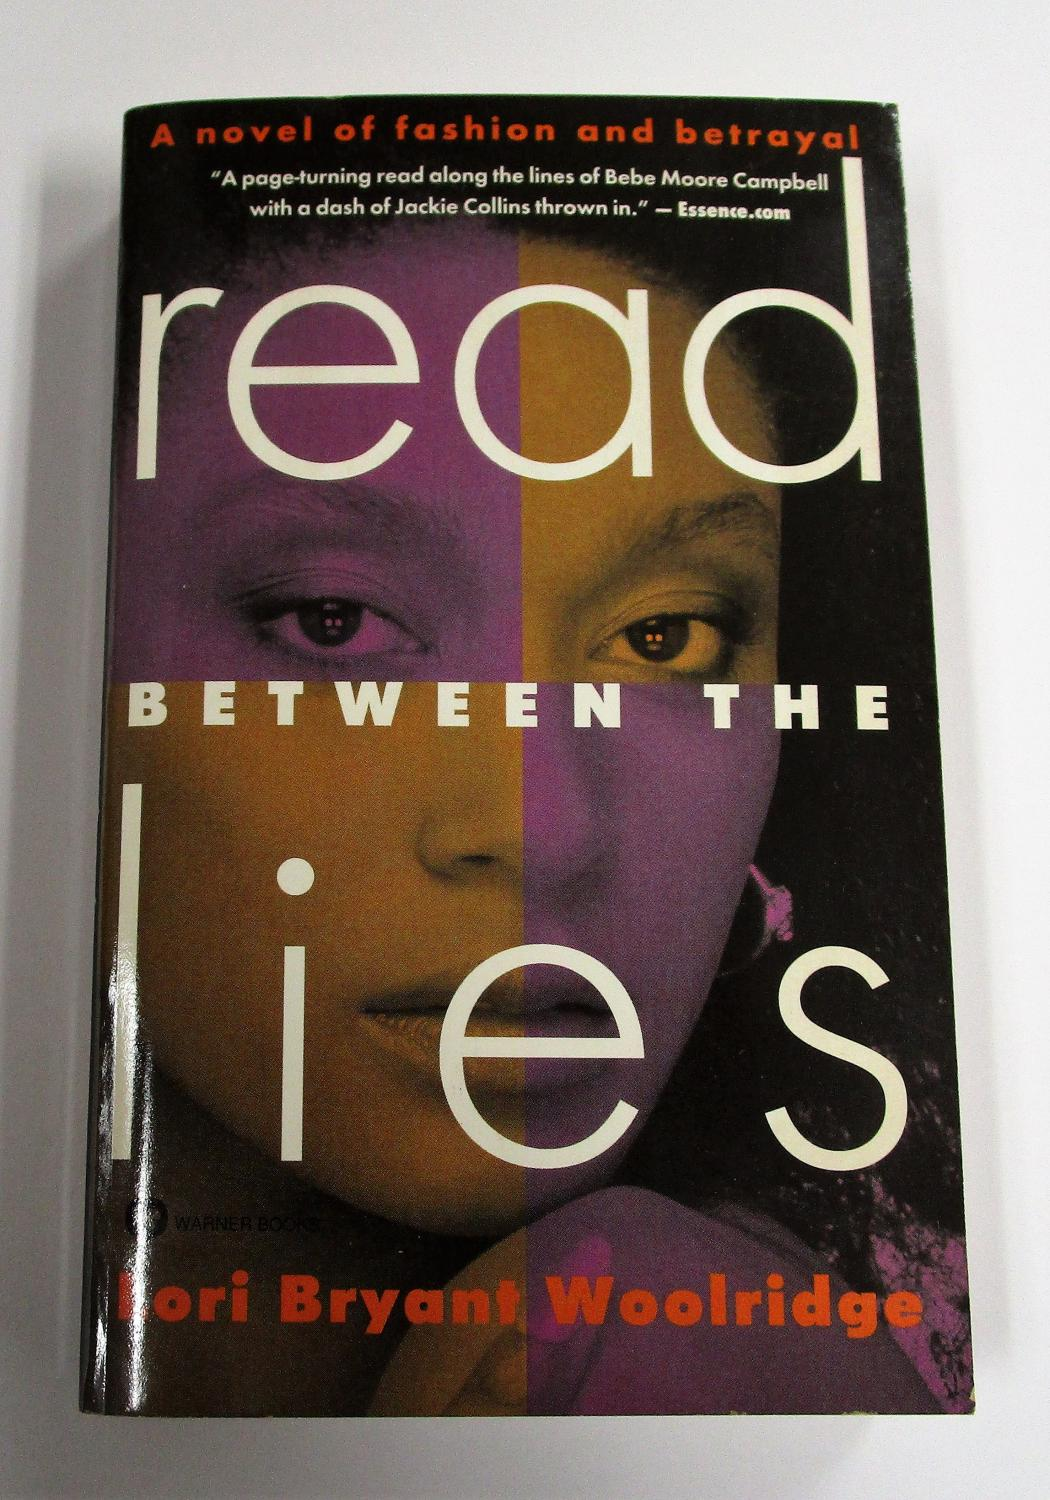 Read Between the Lies - Woolridge, Lori Bryant